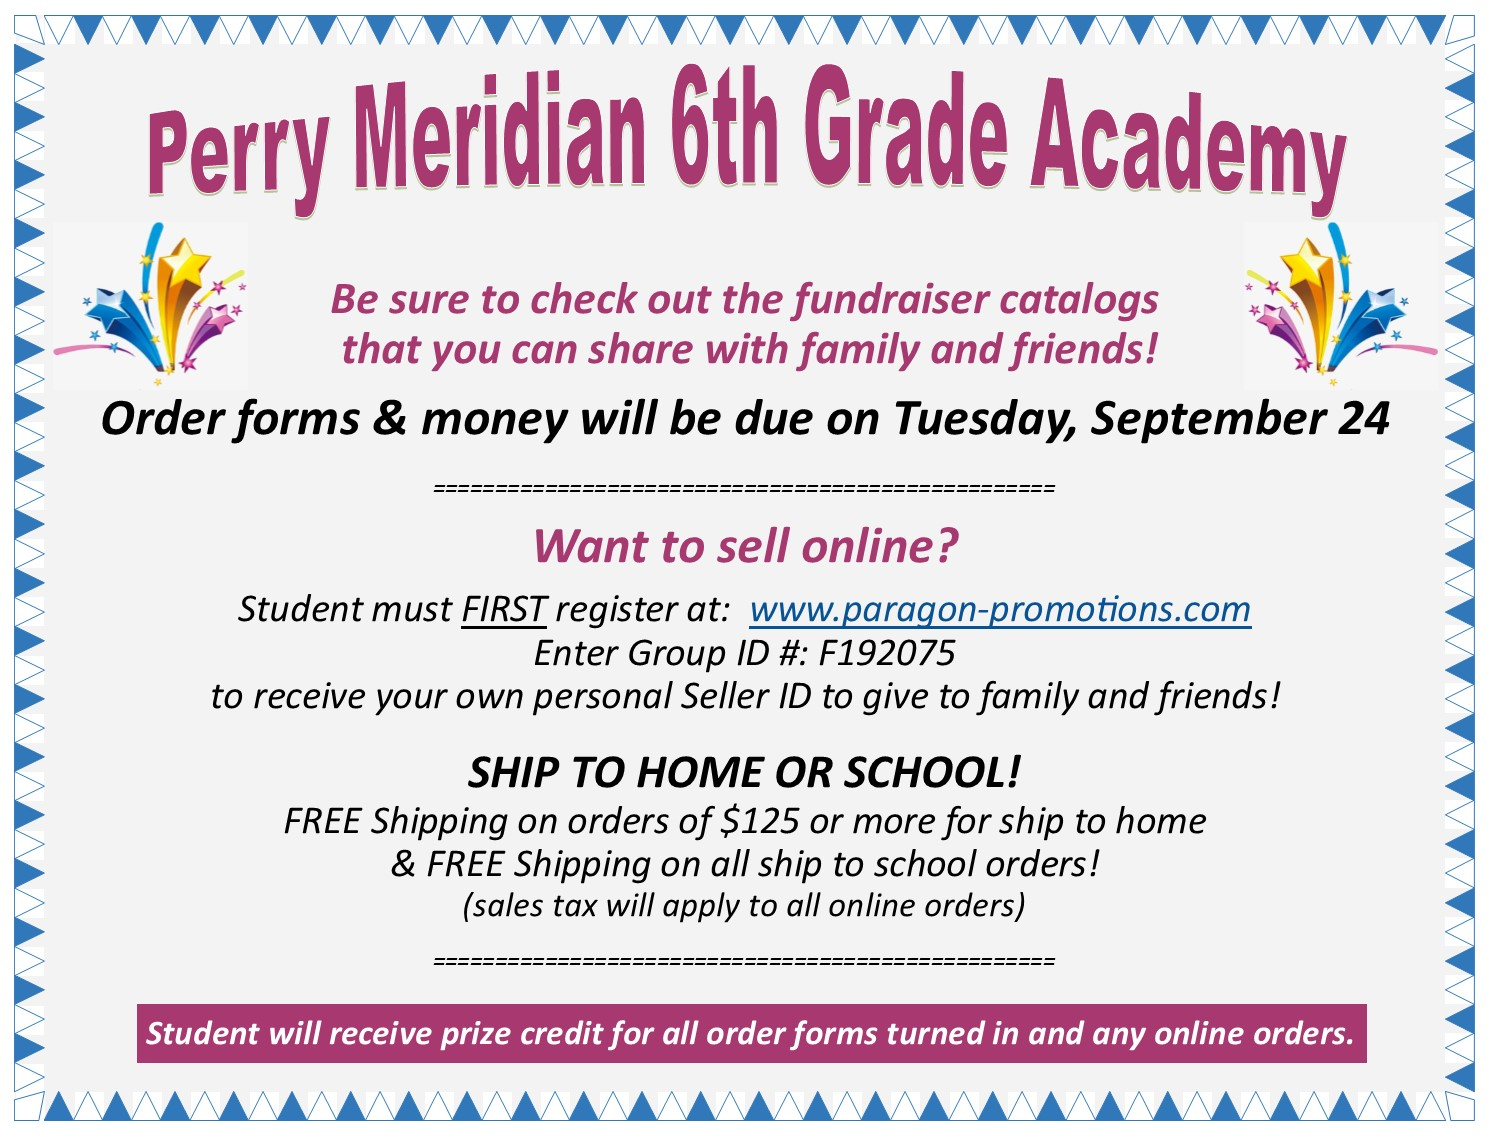 Fundraiser Information! | Perry Meridian 6th Grade Academy